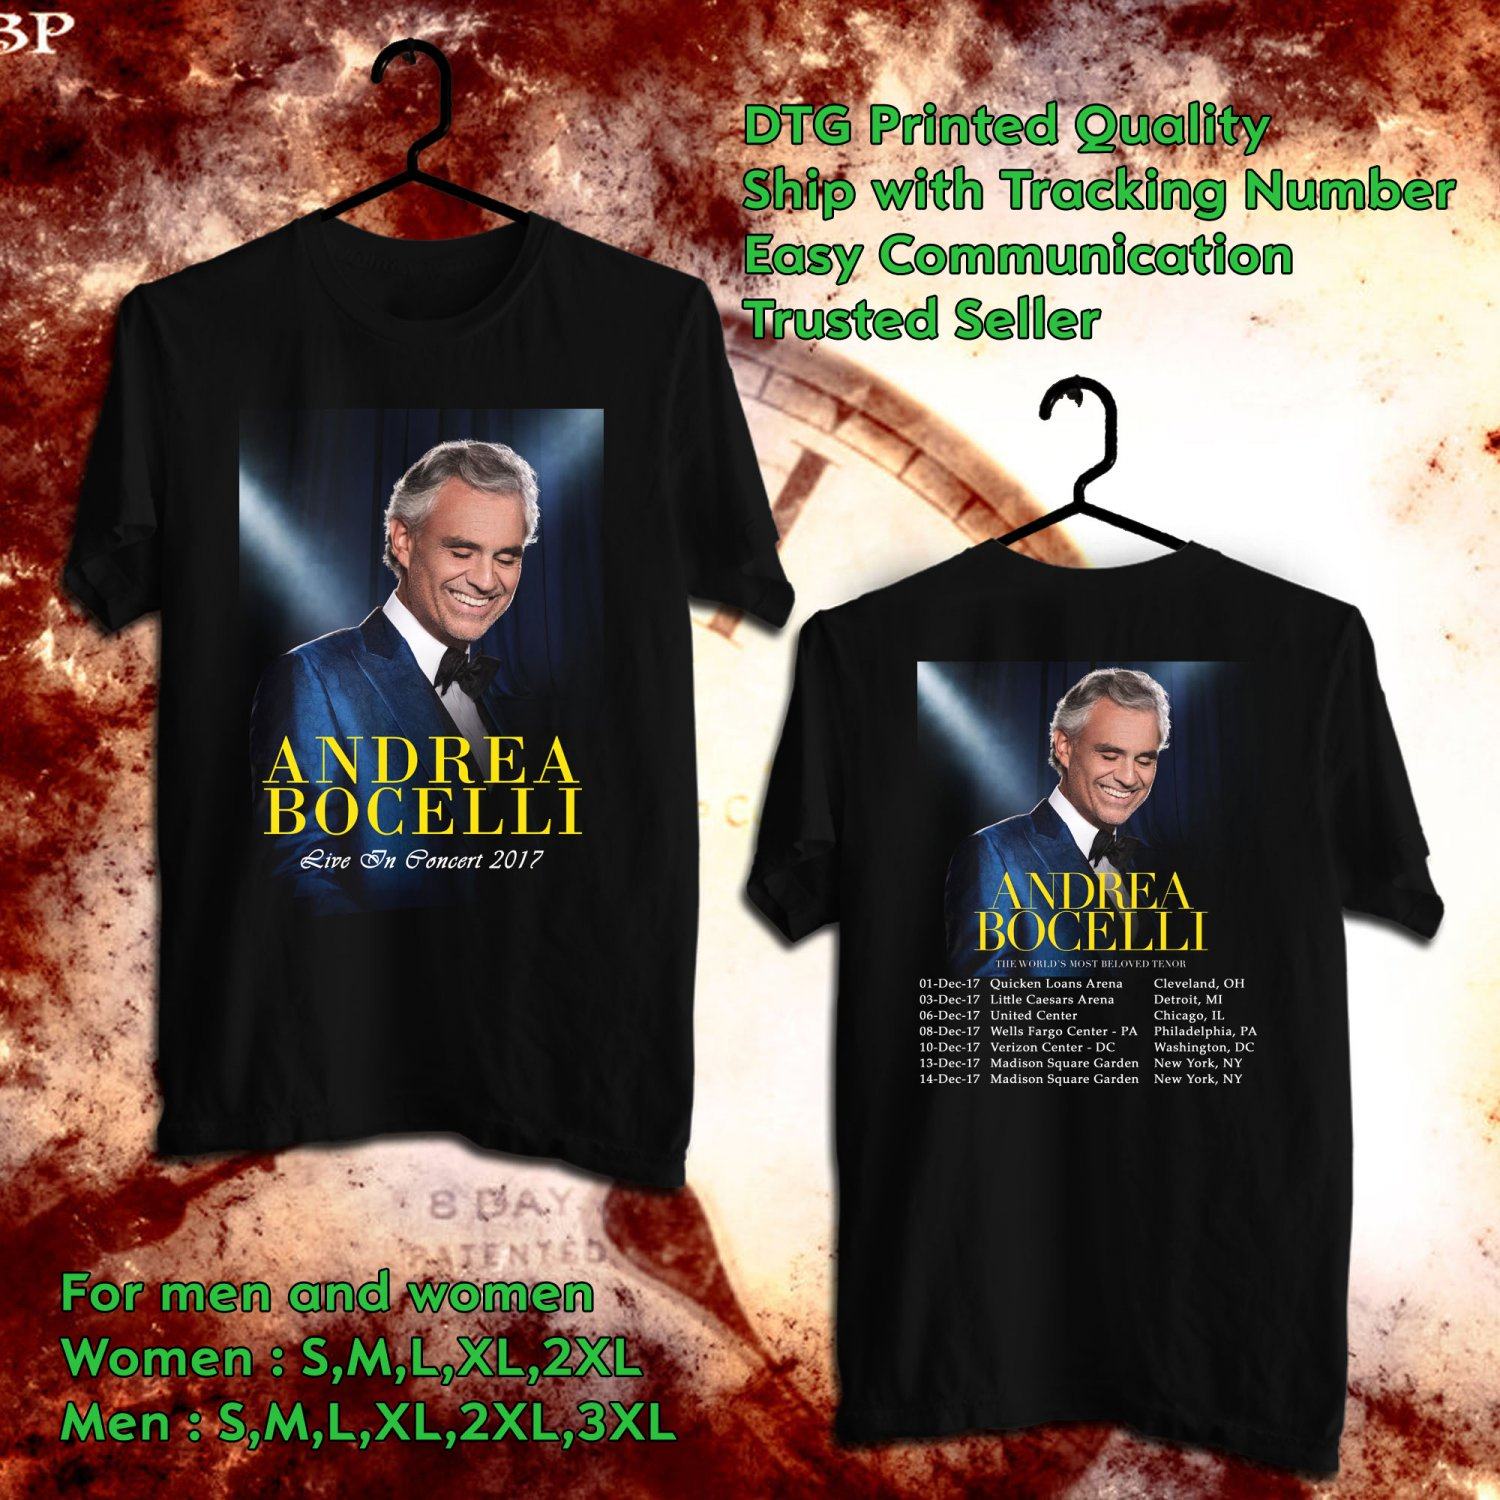 HITS ANDREA BOCELLI LIVE TOUR 2017 BLACK TEE'S 2SIDE MAN WOMEN ASTR 849